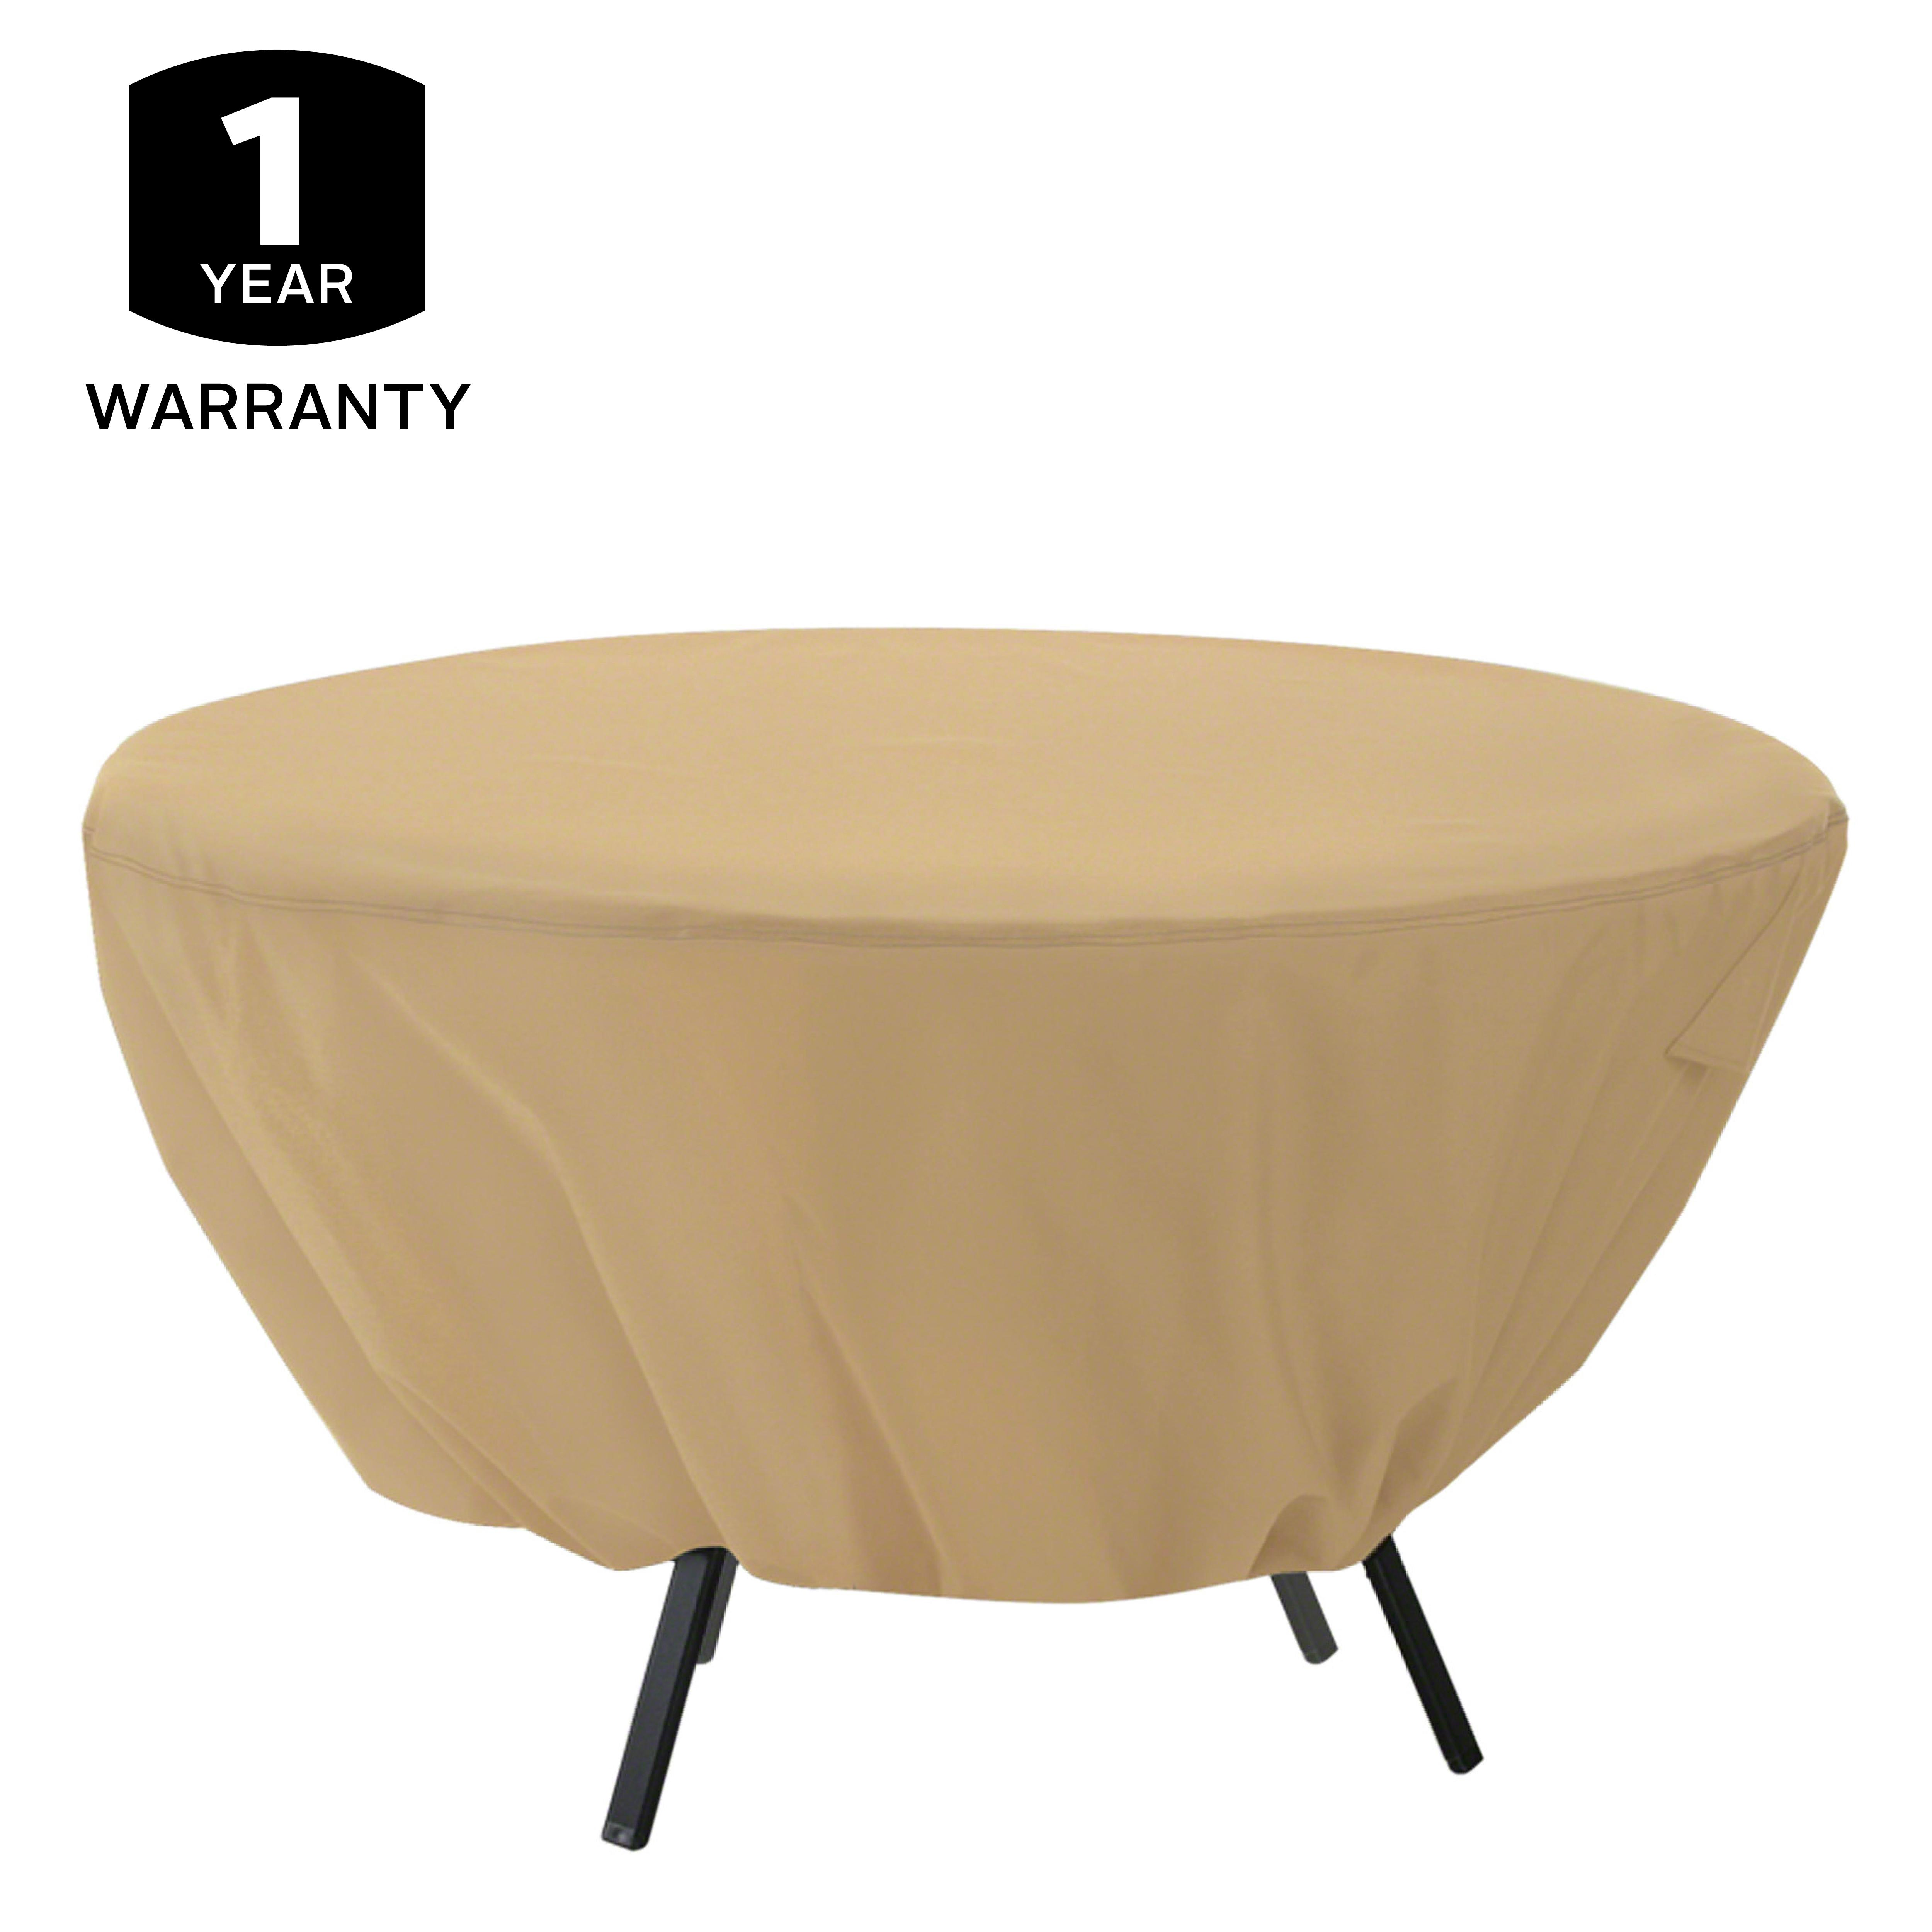 Great Amazon Outdoor Furniture Covers